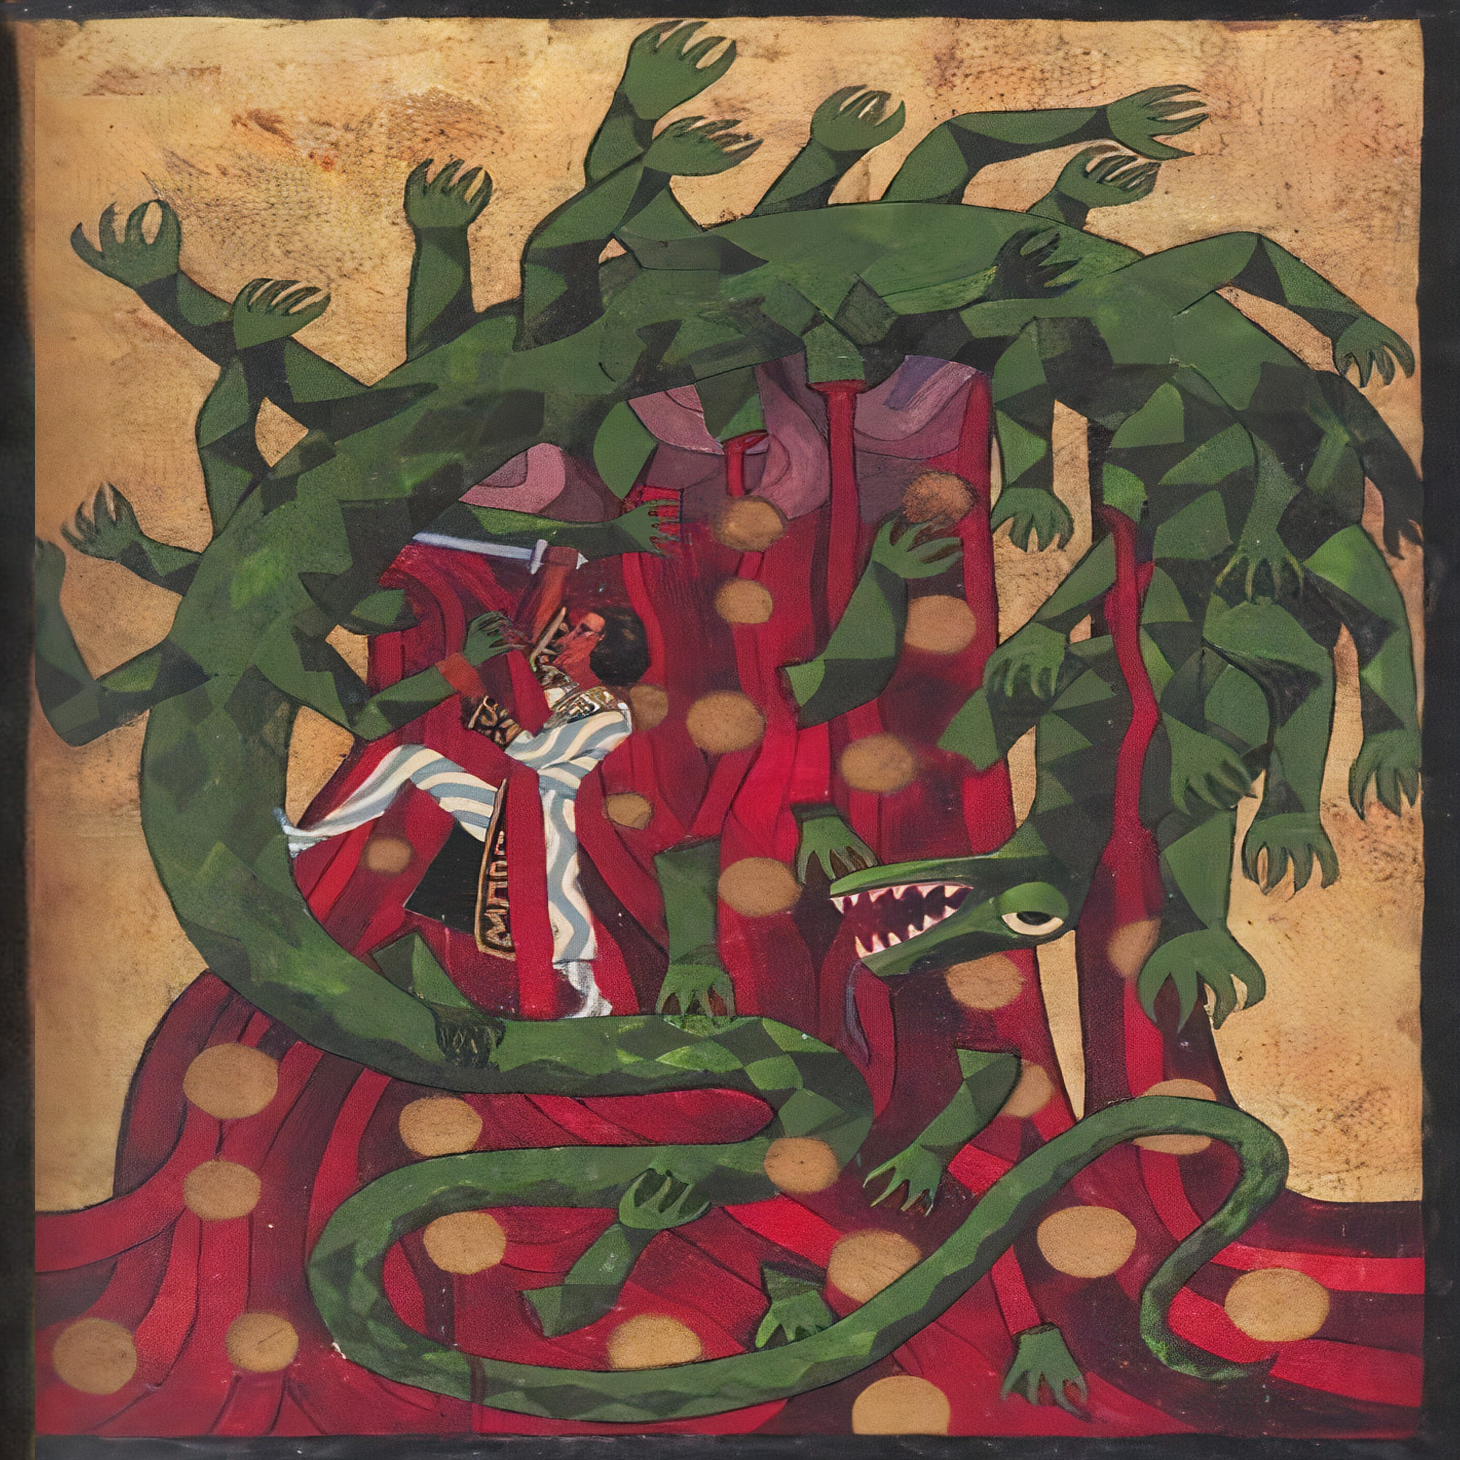 The Red Book Paintings: Jung's Confrontation with the Spiritual Unconscious